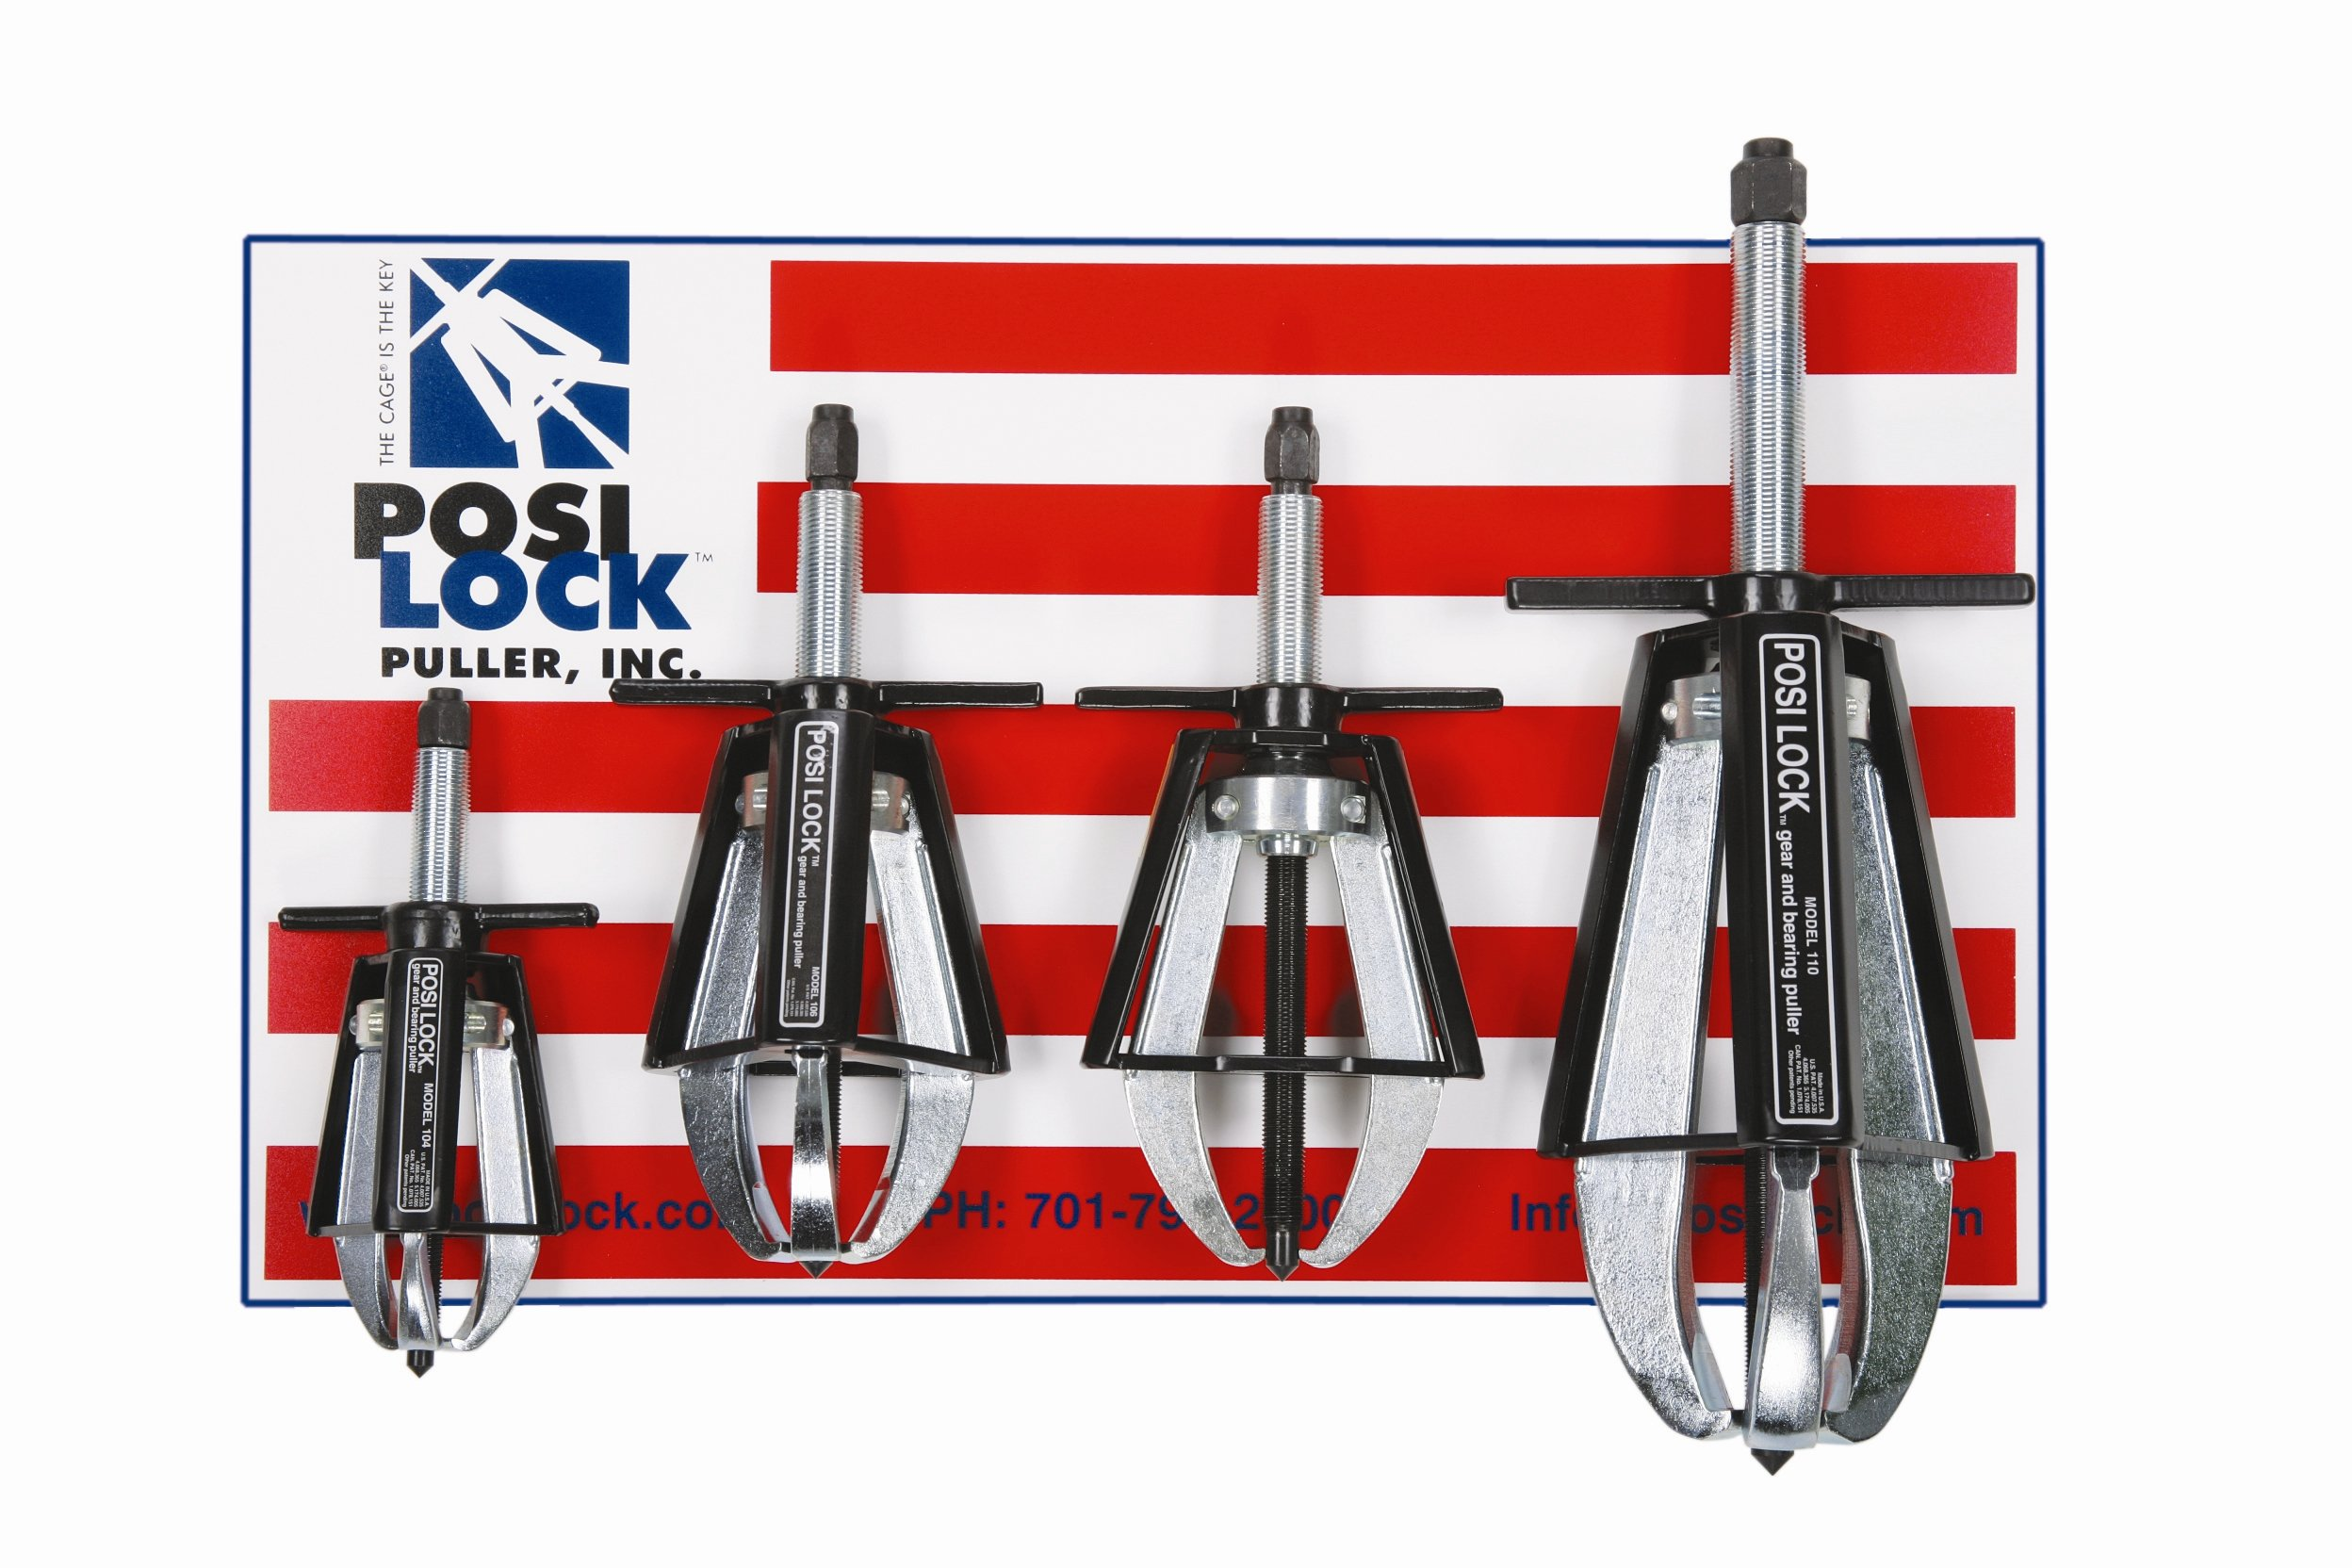 Posi Lock PM4 Puller Set, 5 to 20-Ton Capacity